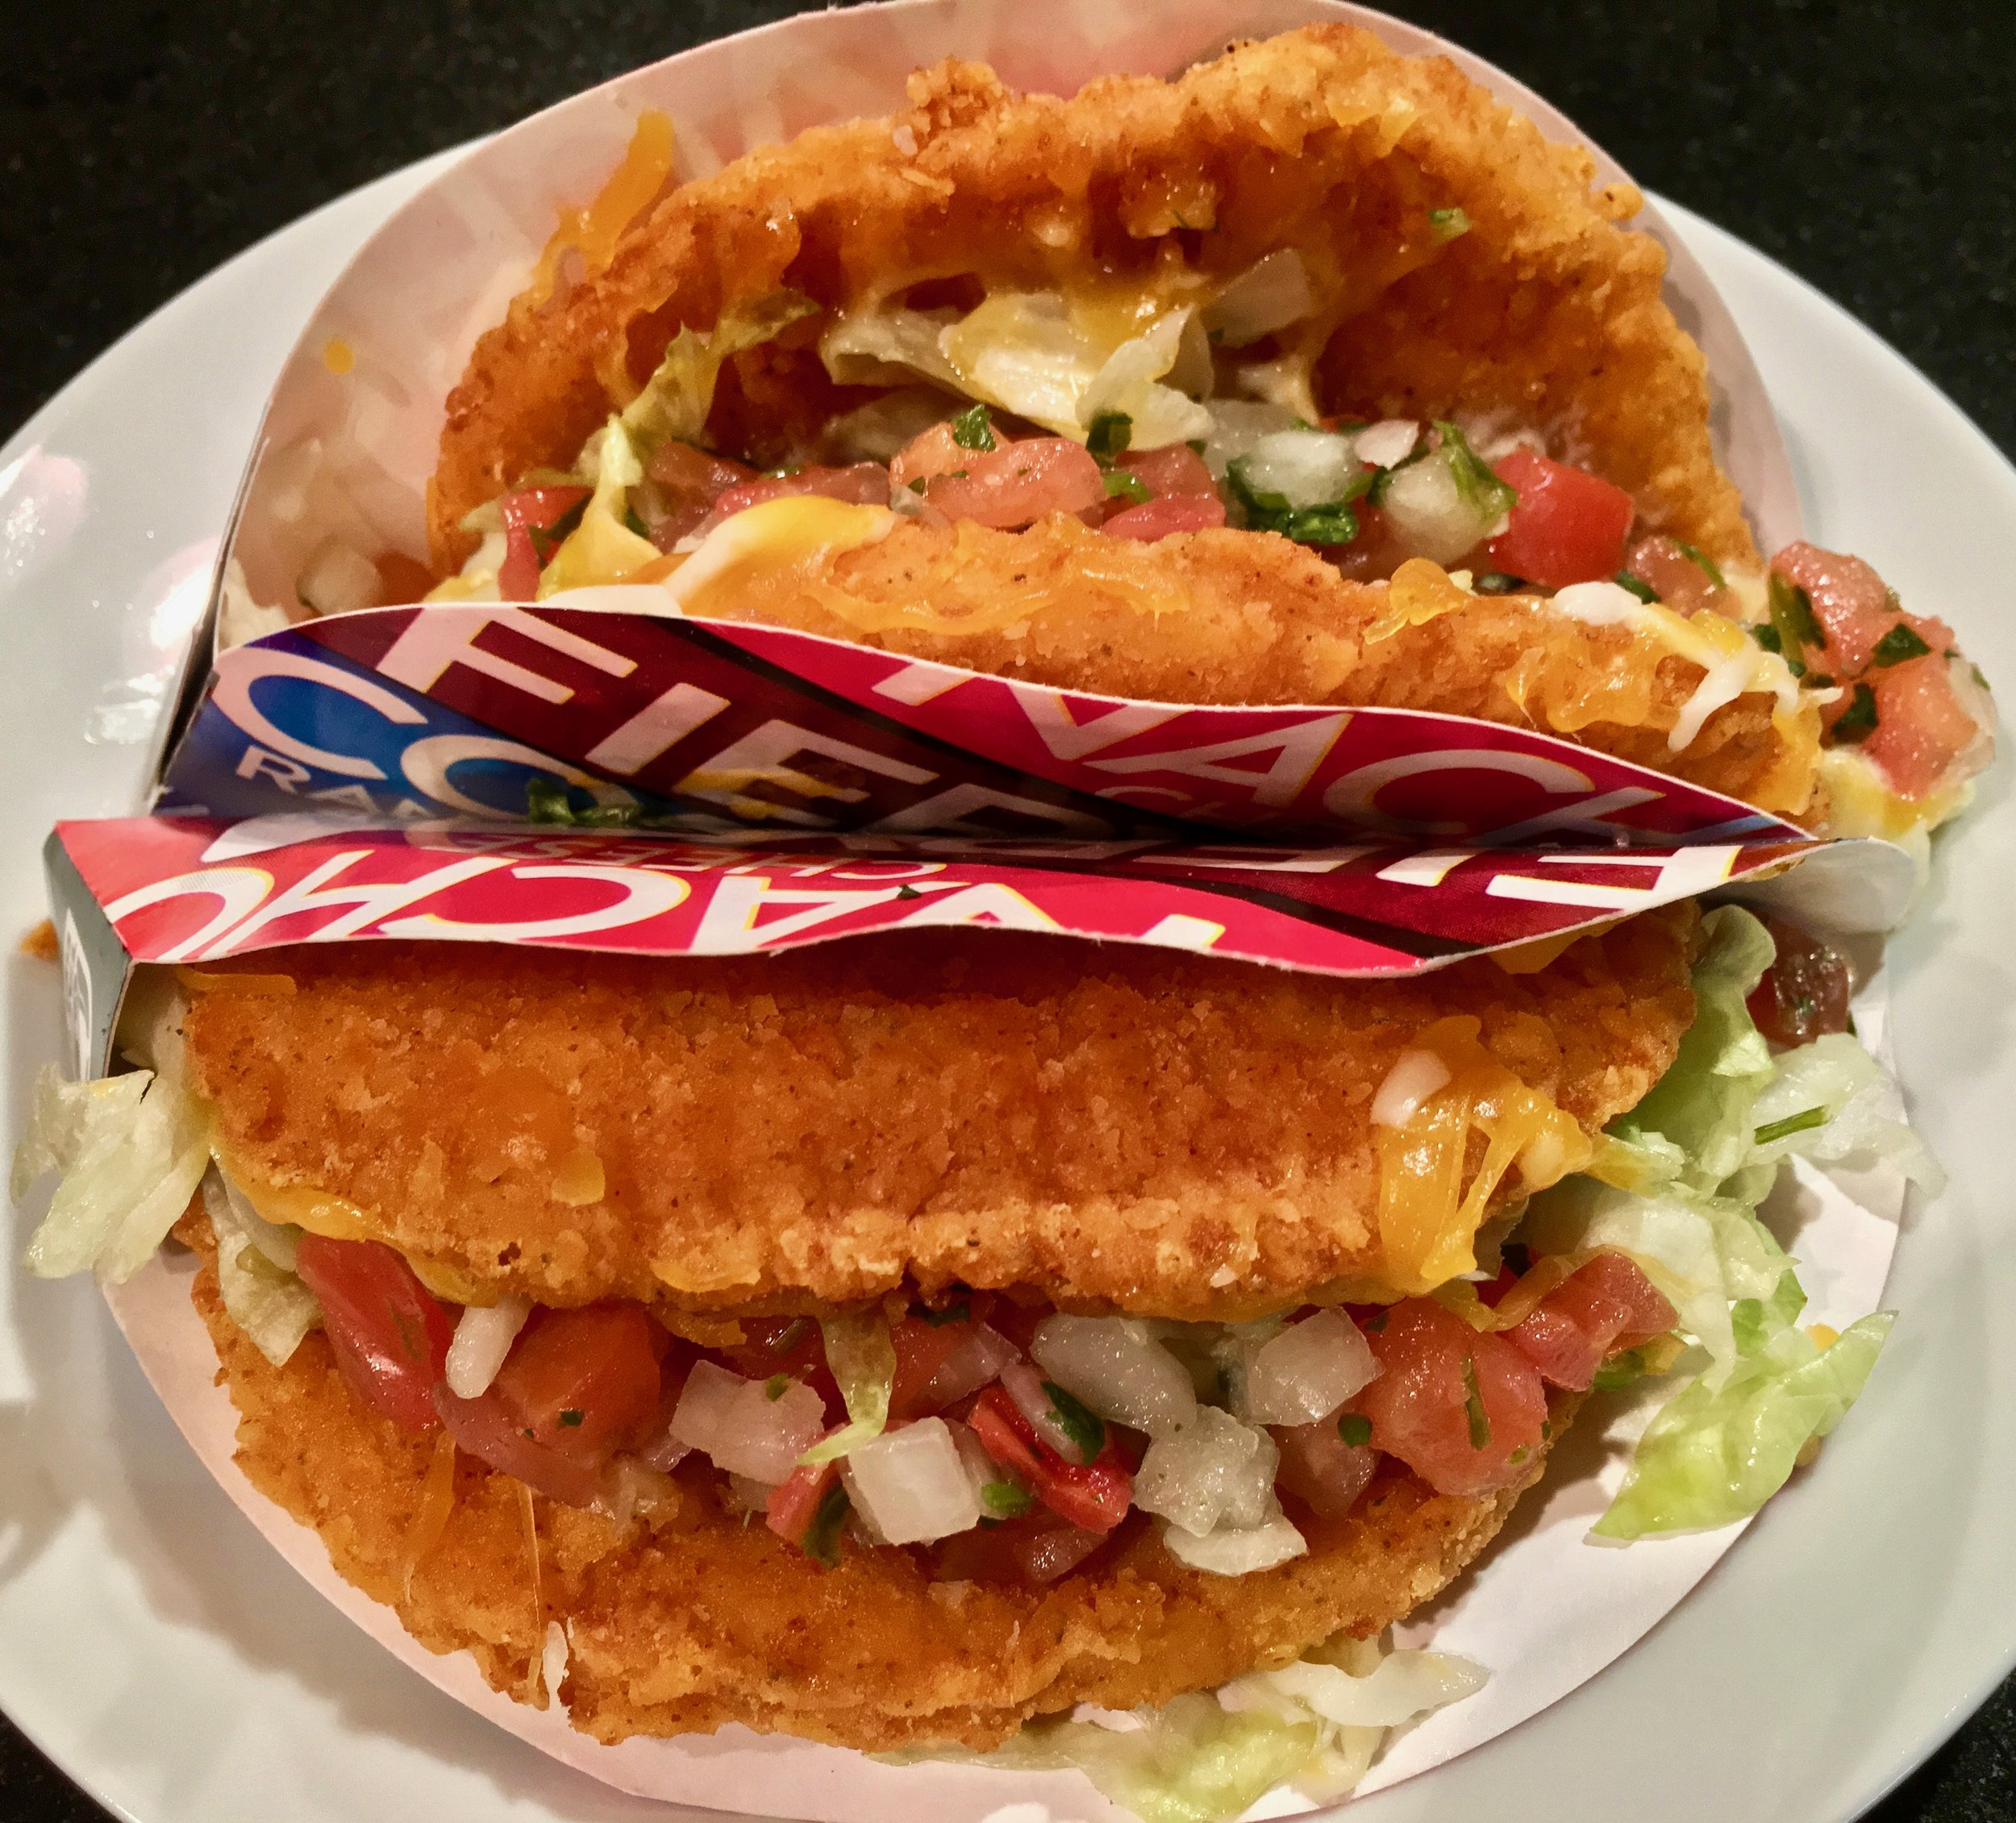 naked chicken chalupa with lettuce, tomato and cheese